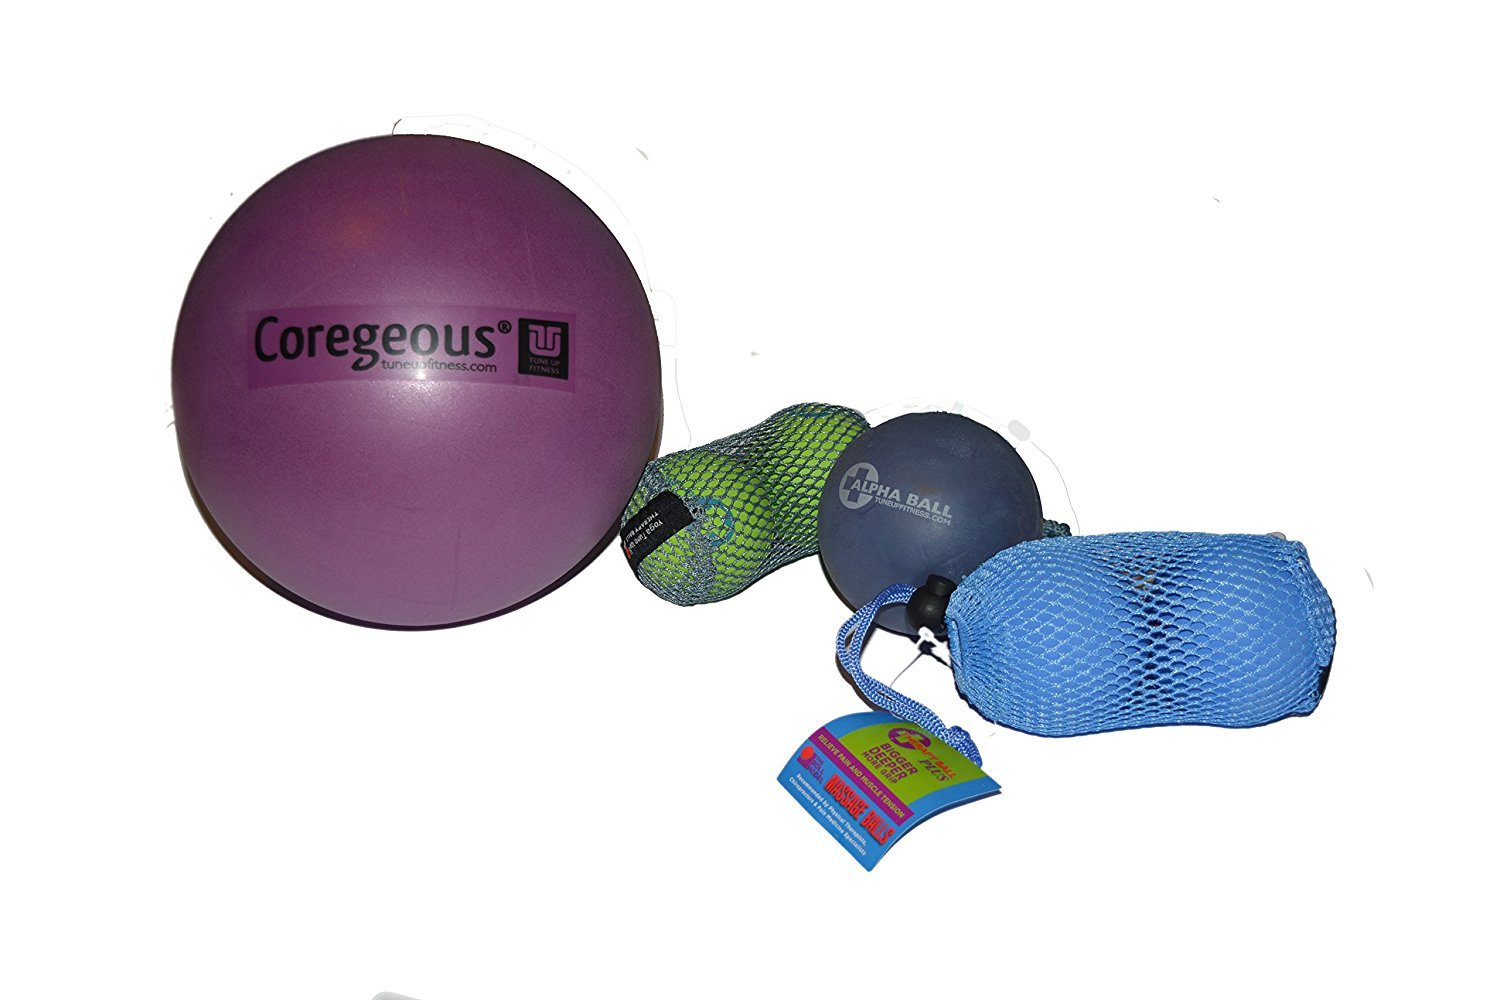 Yoga Tune Up Set of Various Ball Sizes and Colors - original tune up balls, PLUS balls, ALPHA ball and Corgeous Ball With coupon via email for 20% off ...